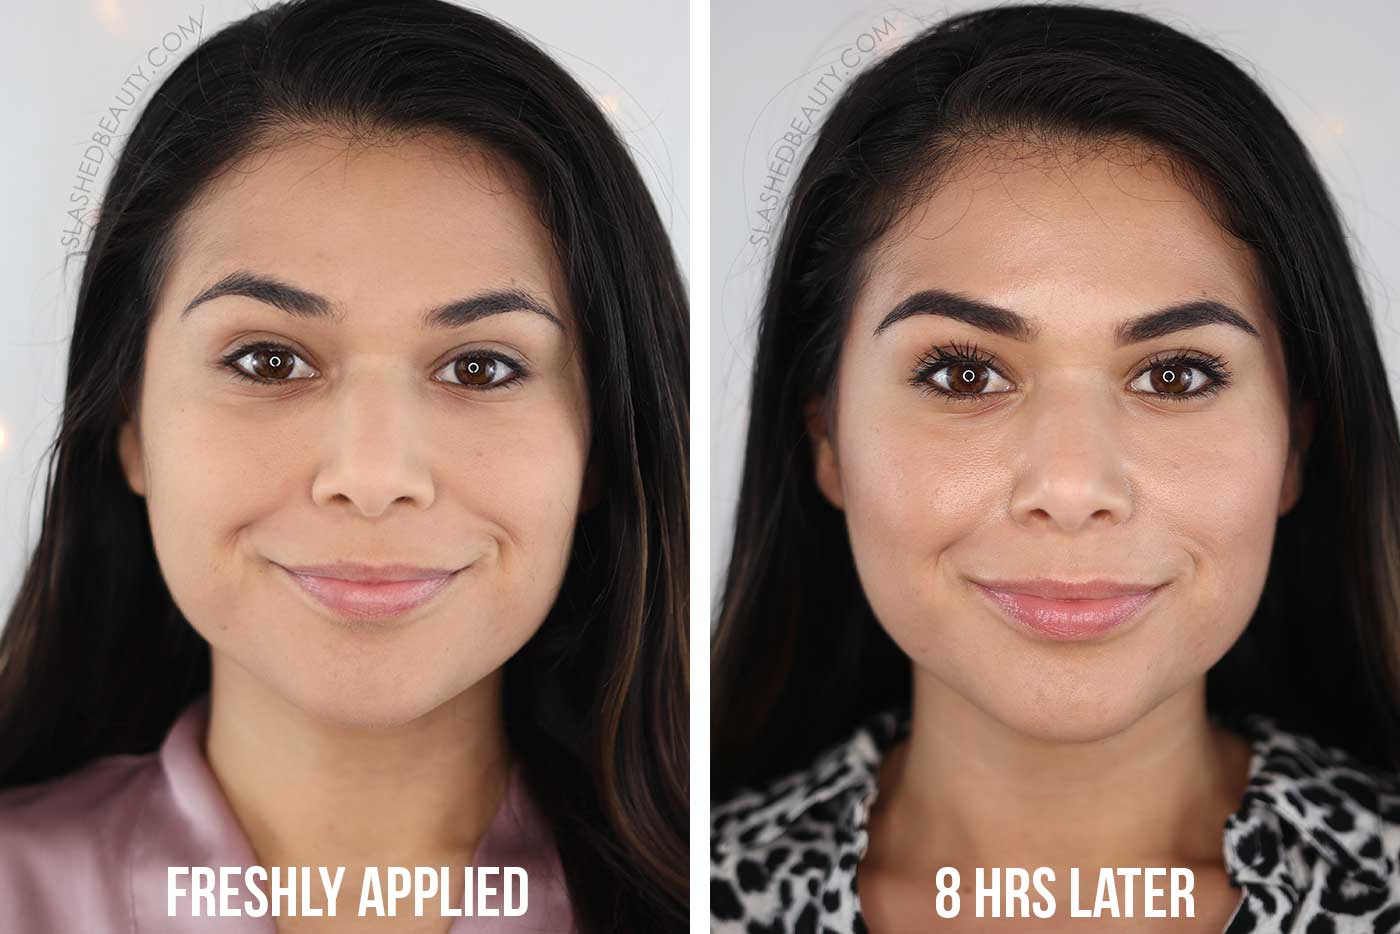 Maybelline SuperStay Powder Foundation Before and After 8 Hours | Slashed Beauty